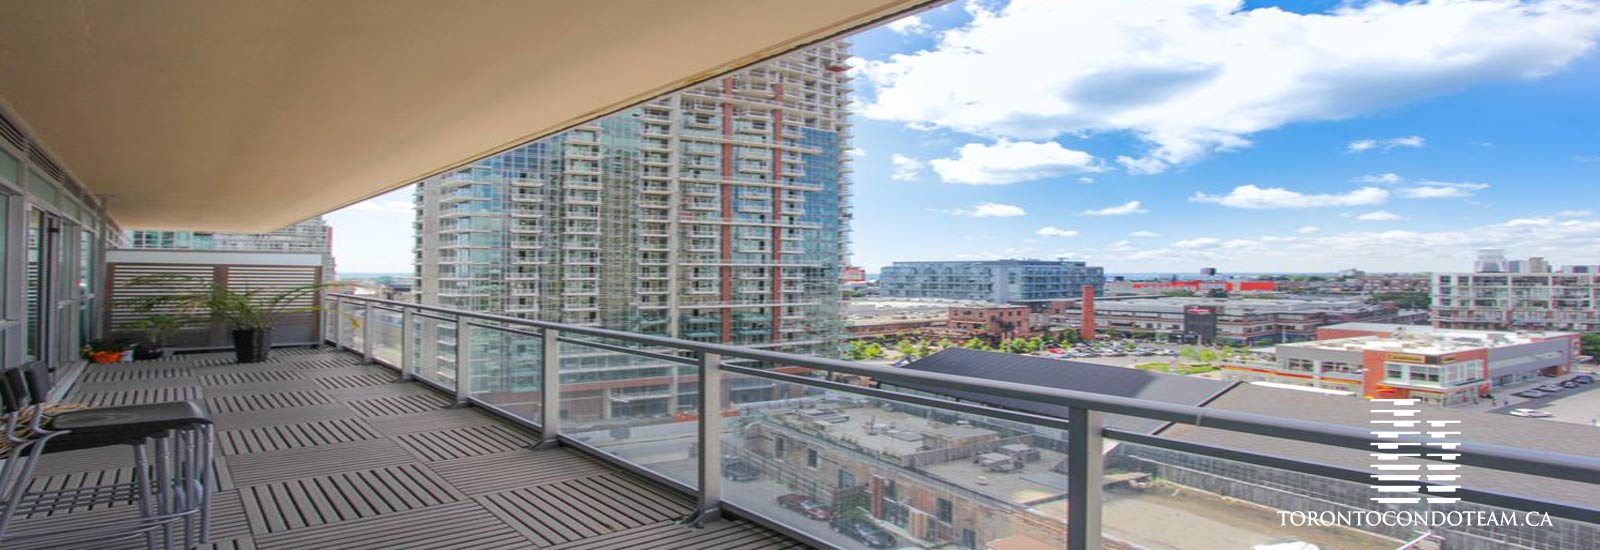 100 Western Battery Road Condos For Sale